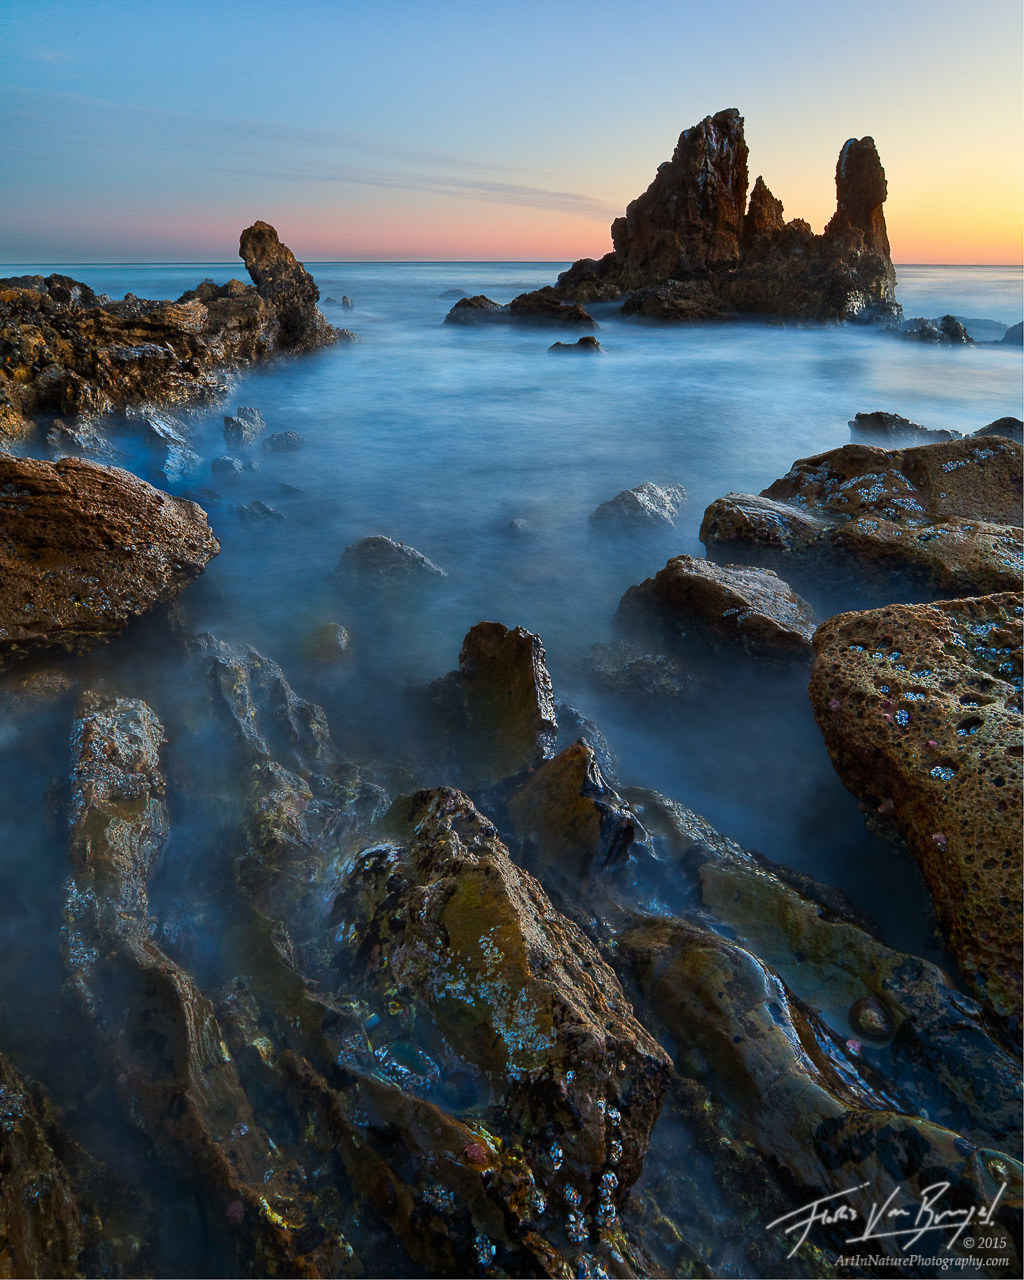 Corona del Mar Seascape, Los Angeles, California, ocean, long exposure, sea castle, photo